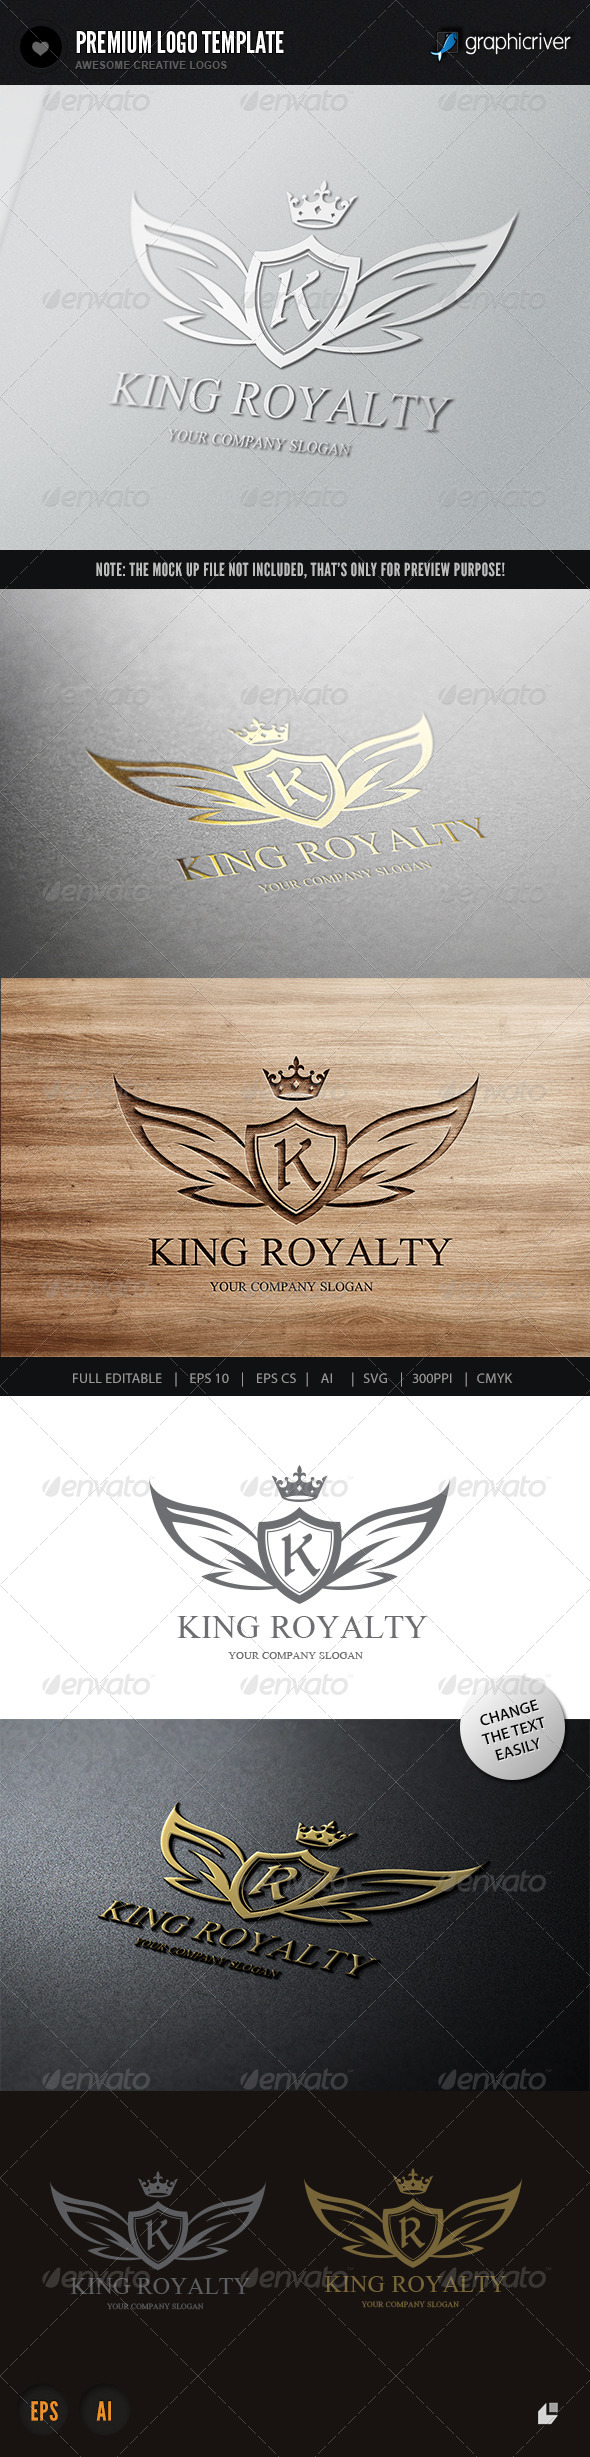 GraphicRiver King Royalty 7124166